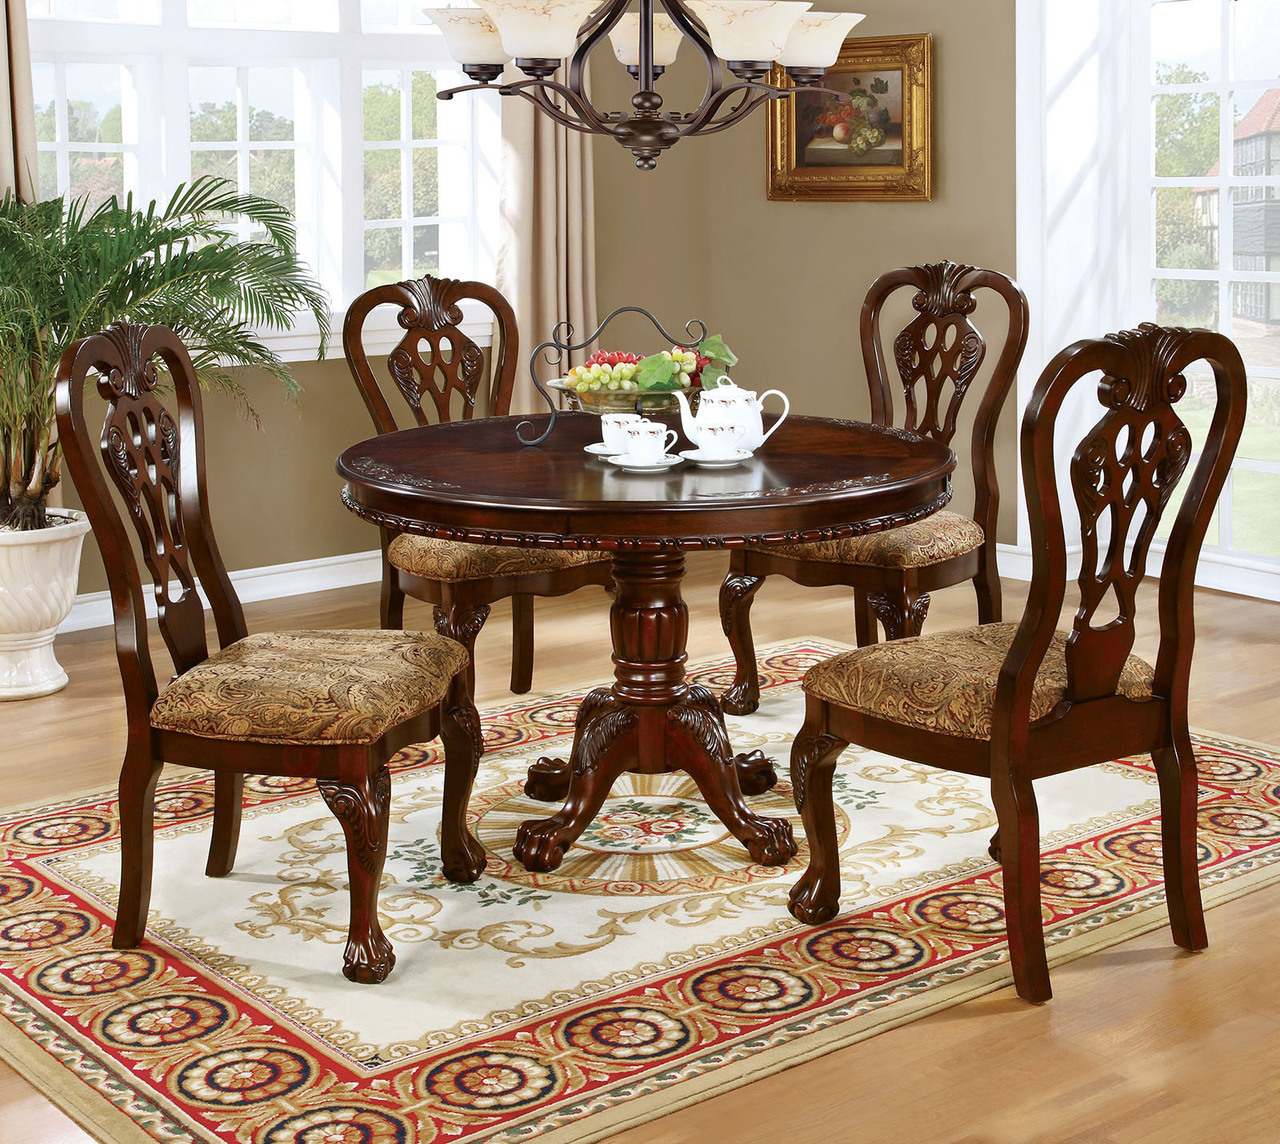 Genial Formal Traditional Antique Dining Room Furniture 5pcs Set Classic Round  Dining Table And Padded Seat Dining Chairs